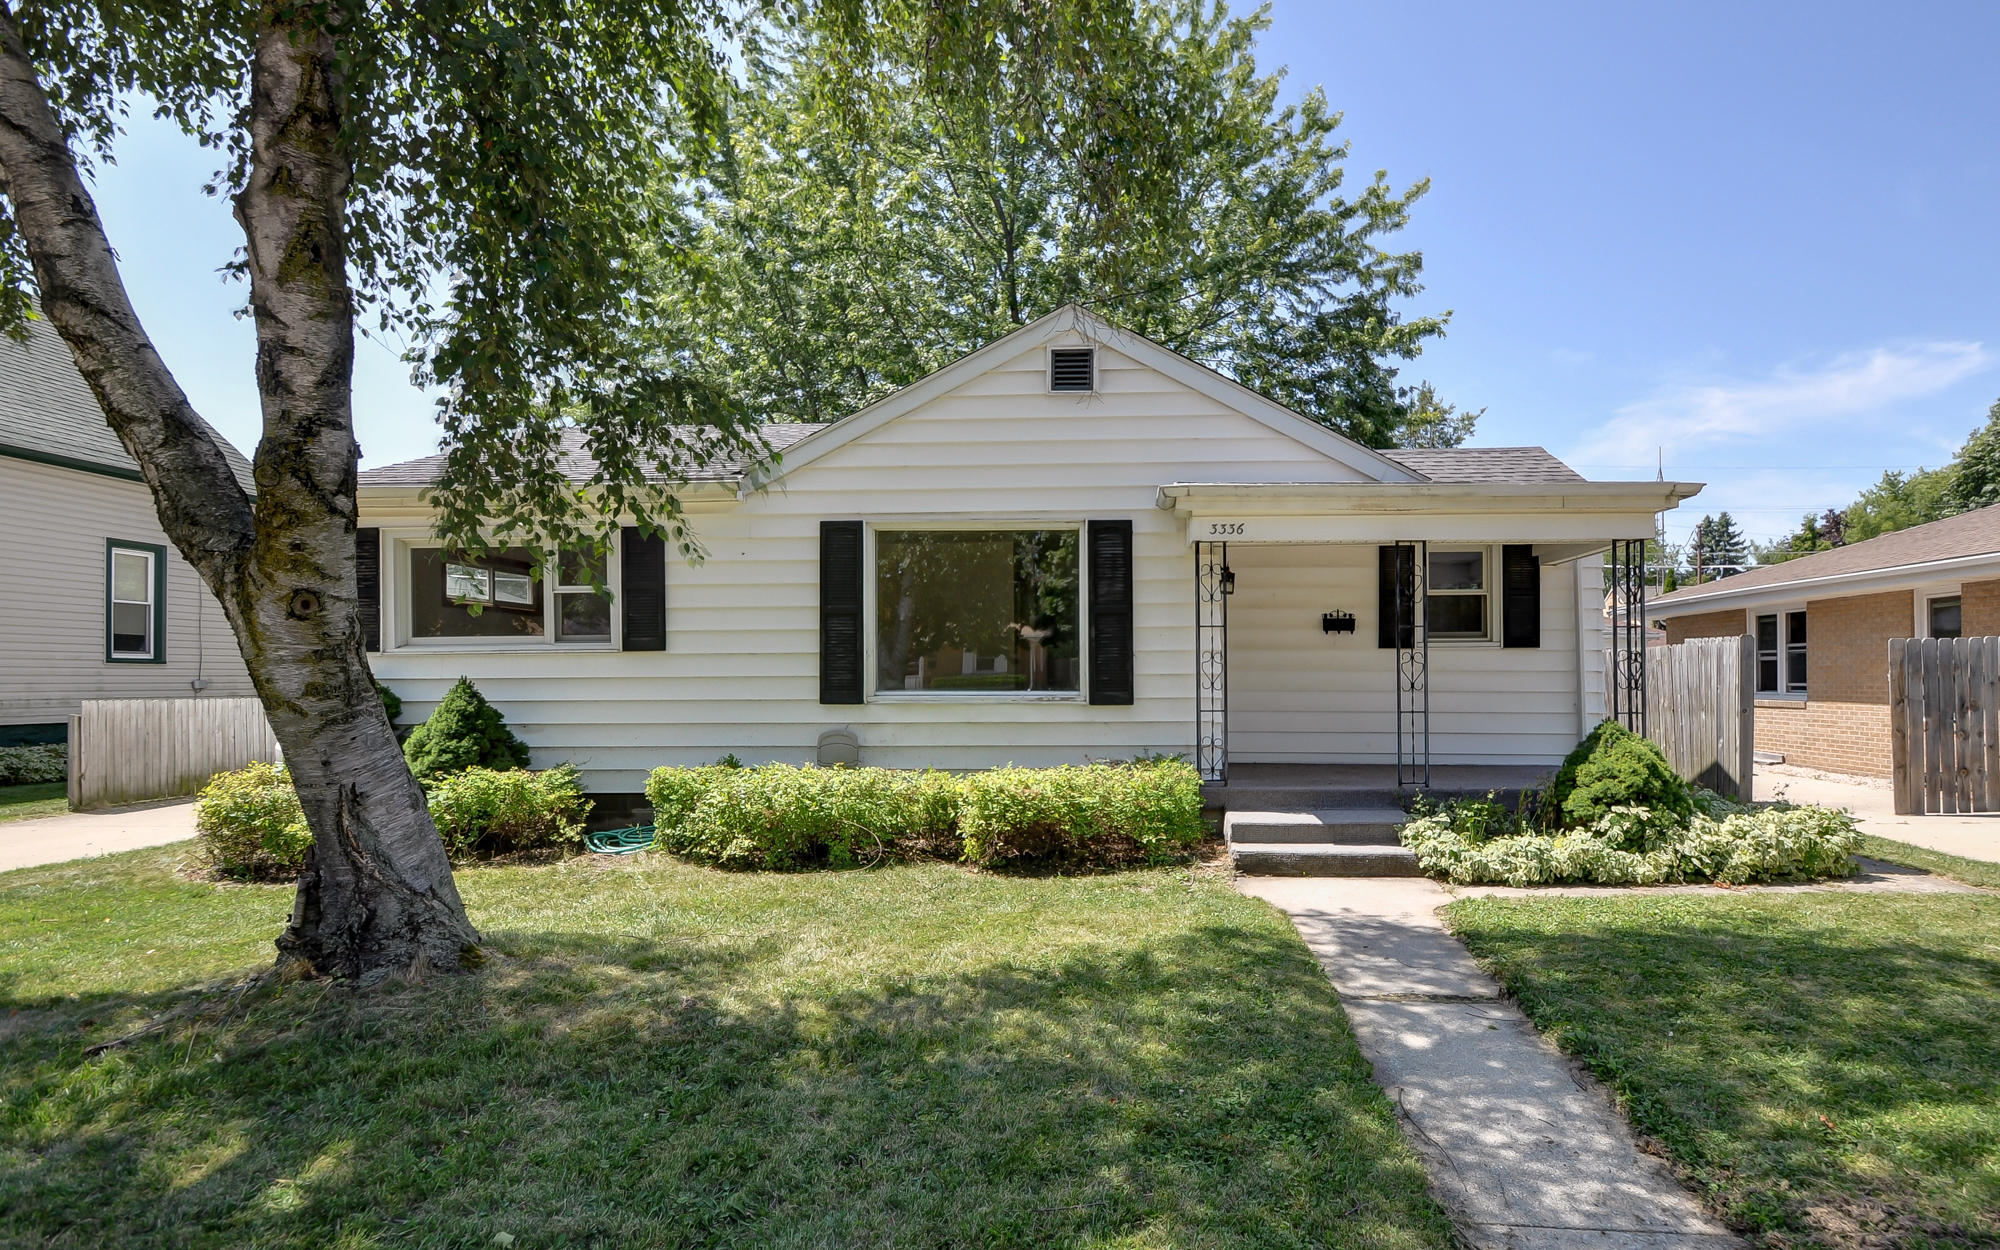 3336 6th Ave, Racine, WI 53402 - MLS 1652055 - Coldwell Banker